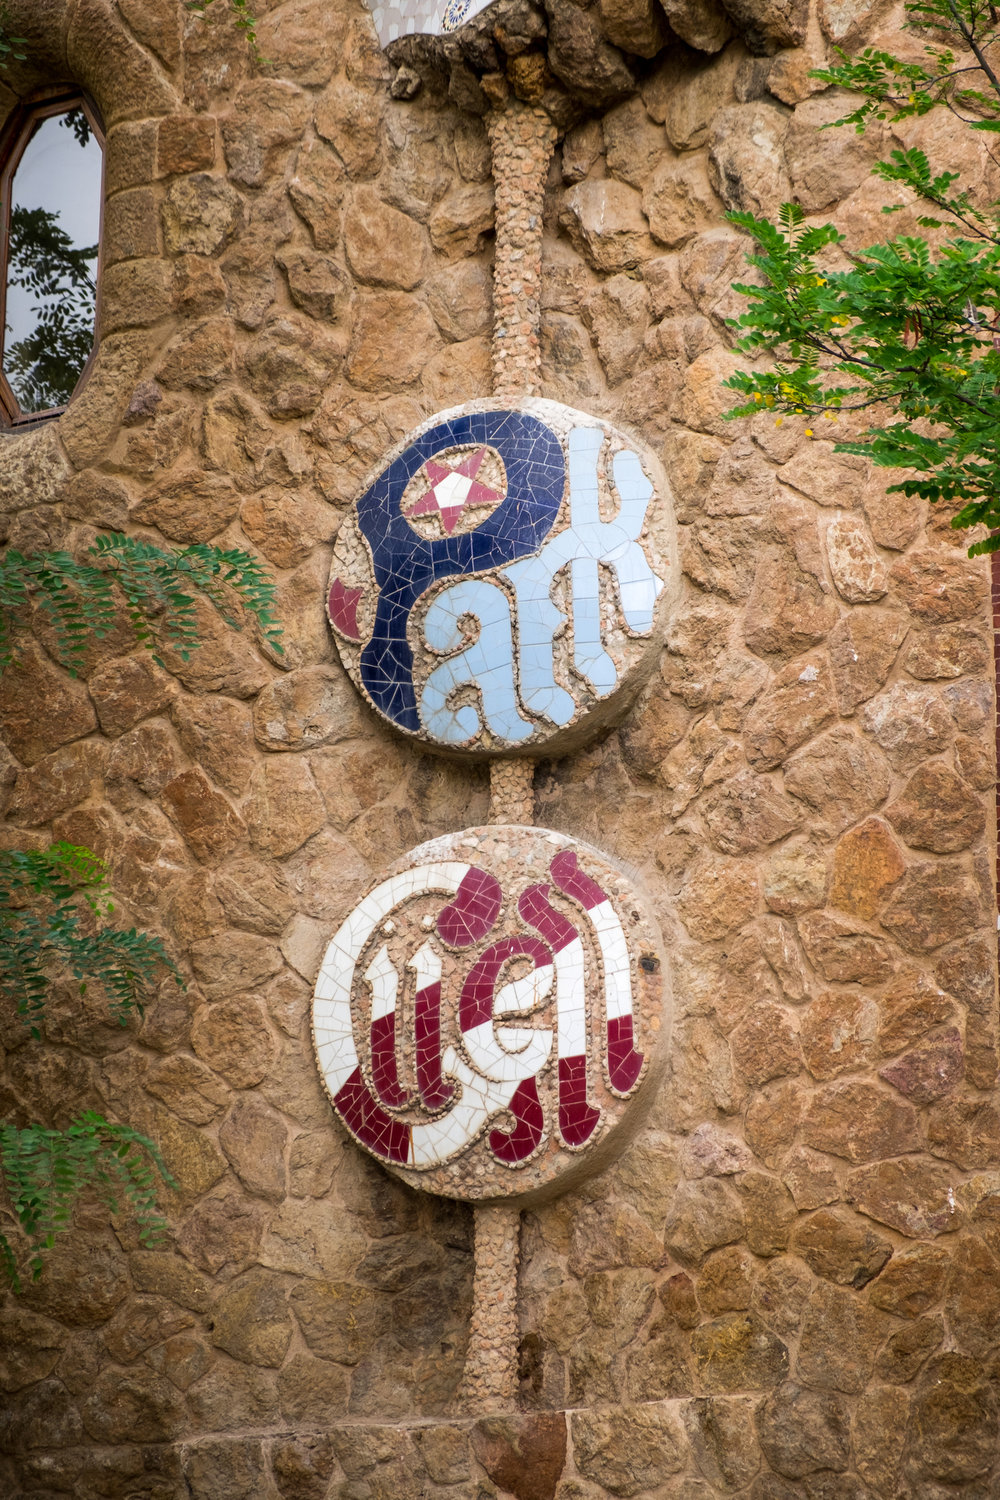 Another of Gaudi's masterpieces - Park Guell.